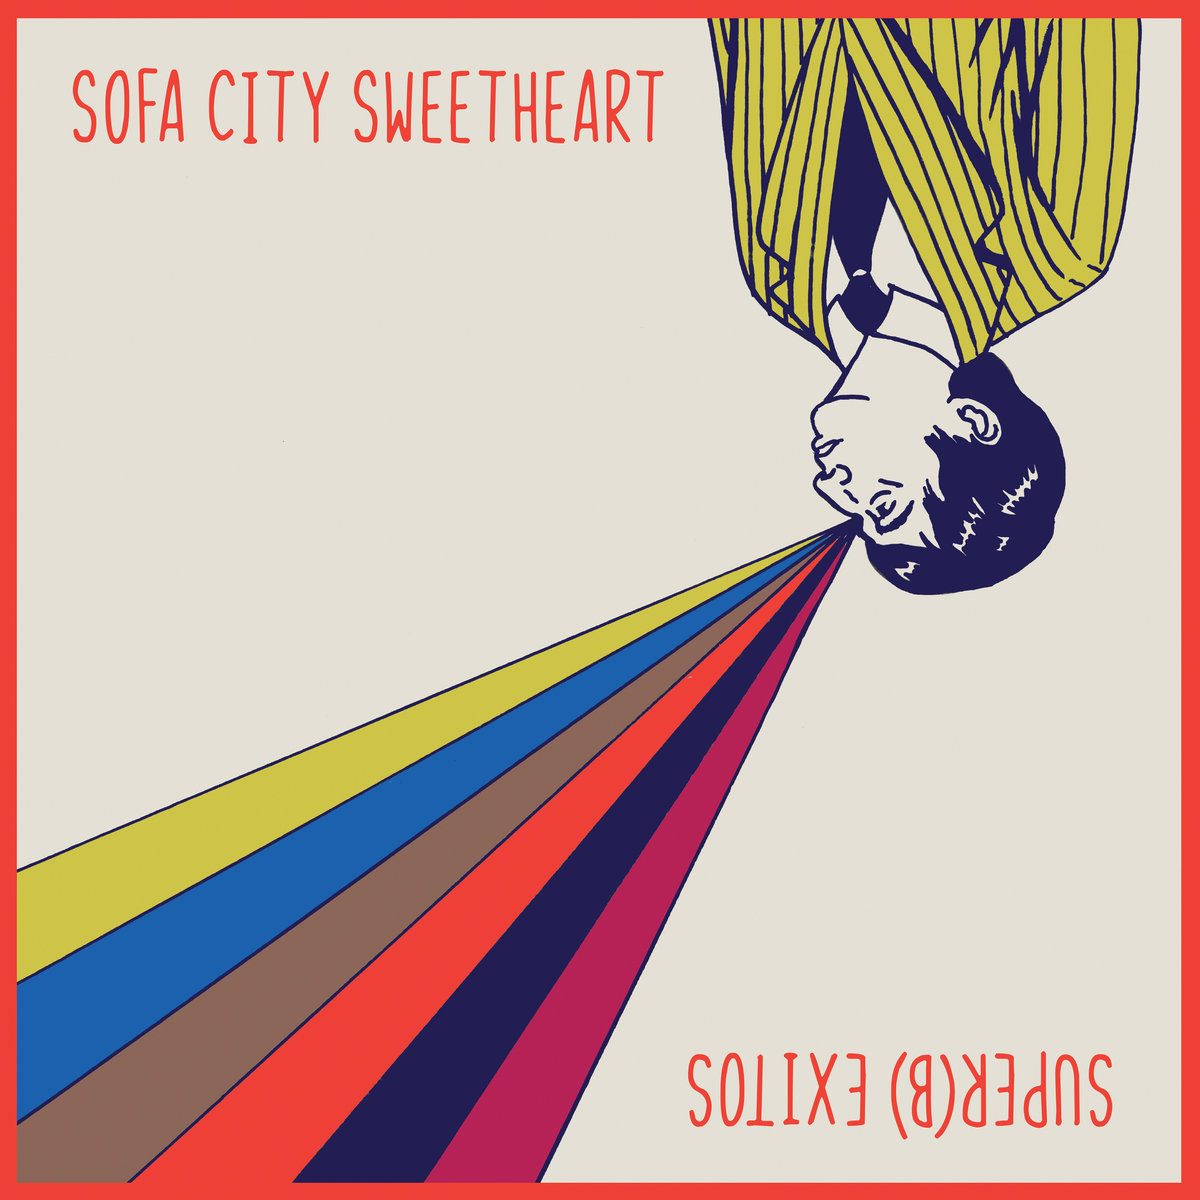 Sofa City Sweetheart – Annie Stays Home